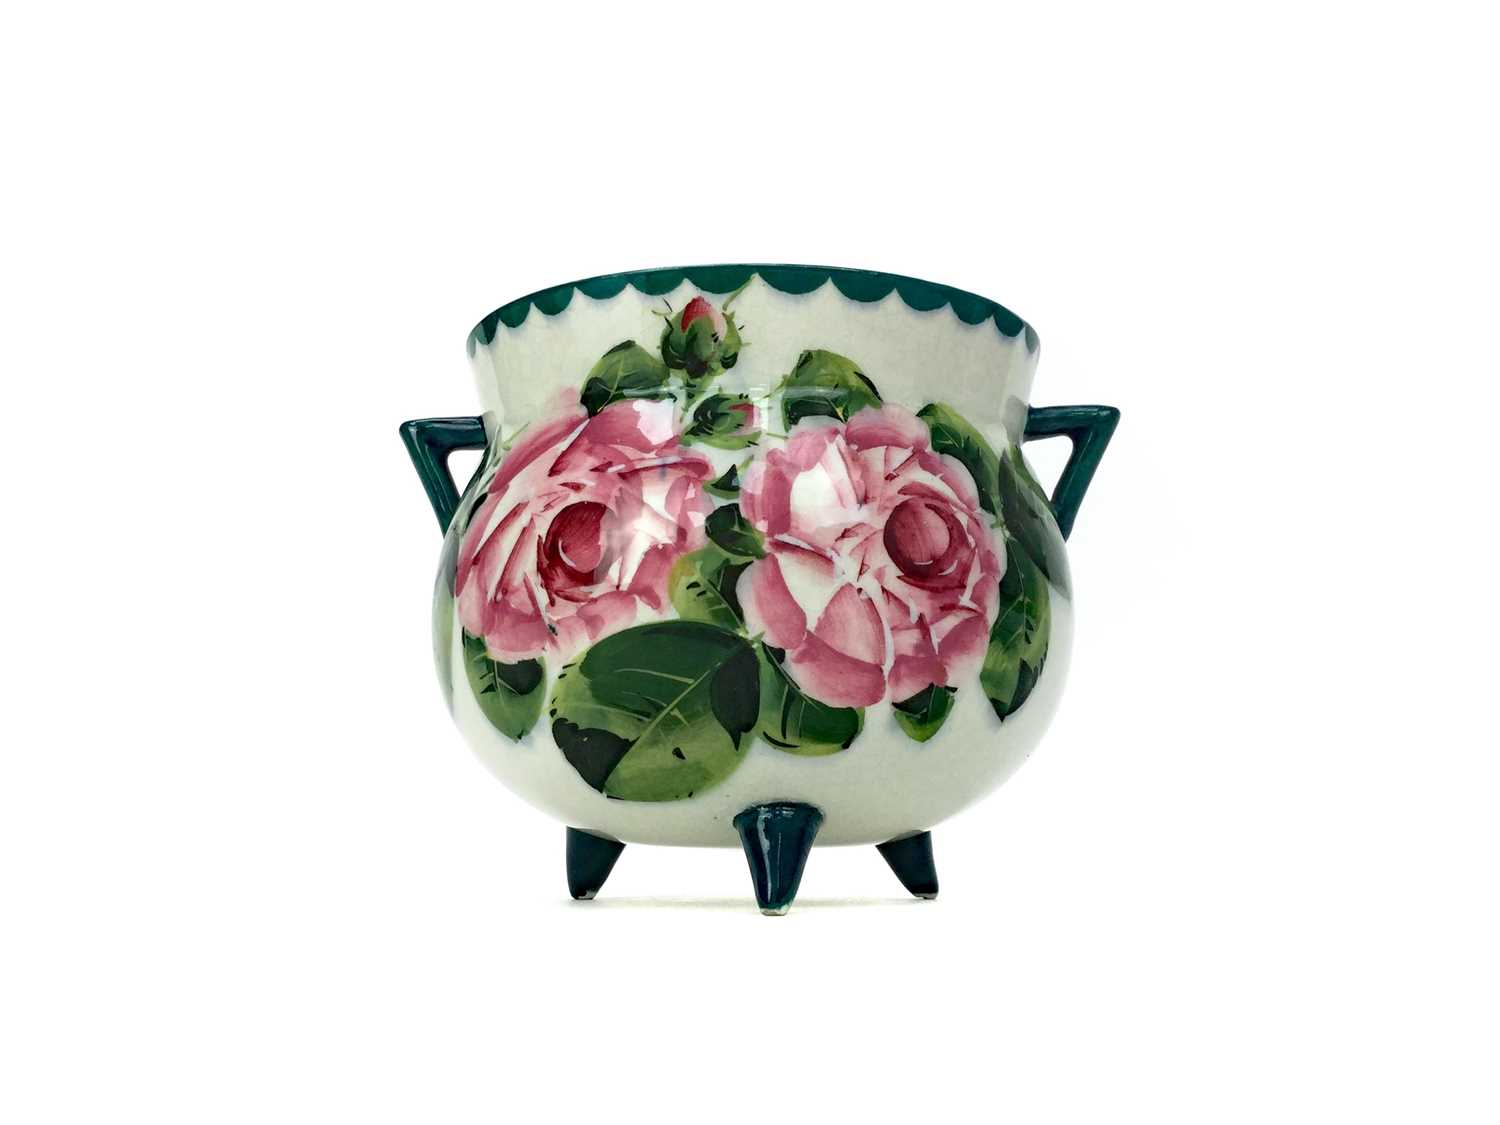 Lot 1024 - A WEMYSS WARE 'CABBAGE ROSE' PATTERN CAULDRON JARDINIERE